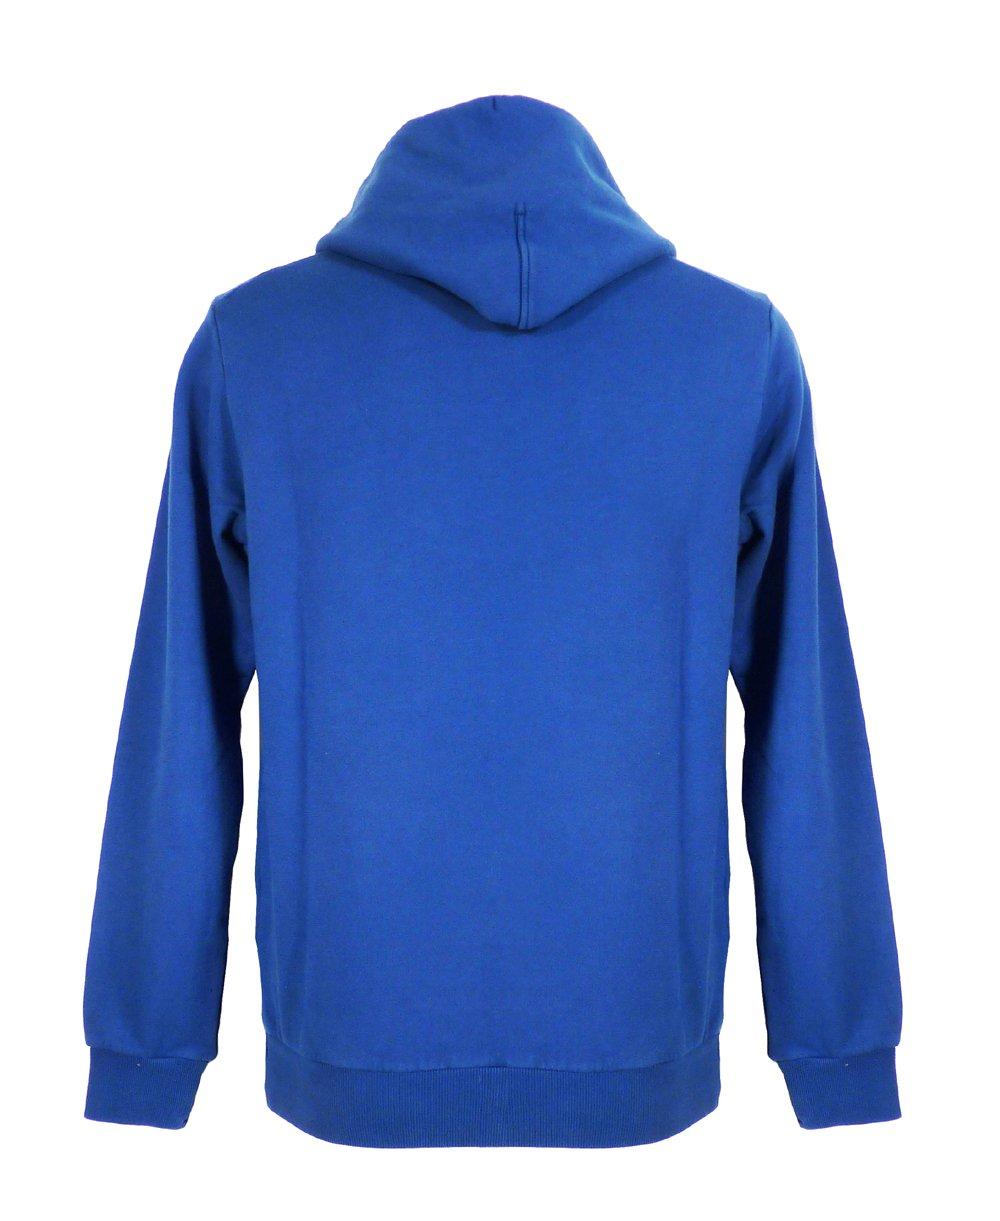 Find your adidas Blue - Sweatshirt at disborunmaba.ga All styles and colors available in the official adidas online store.